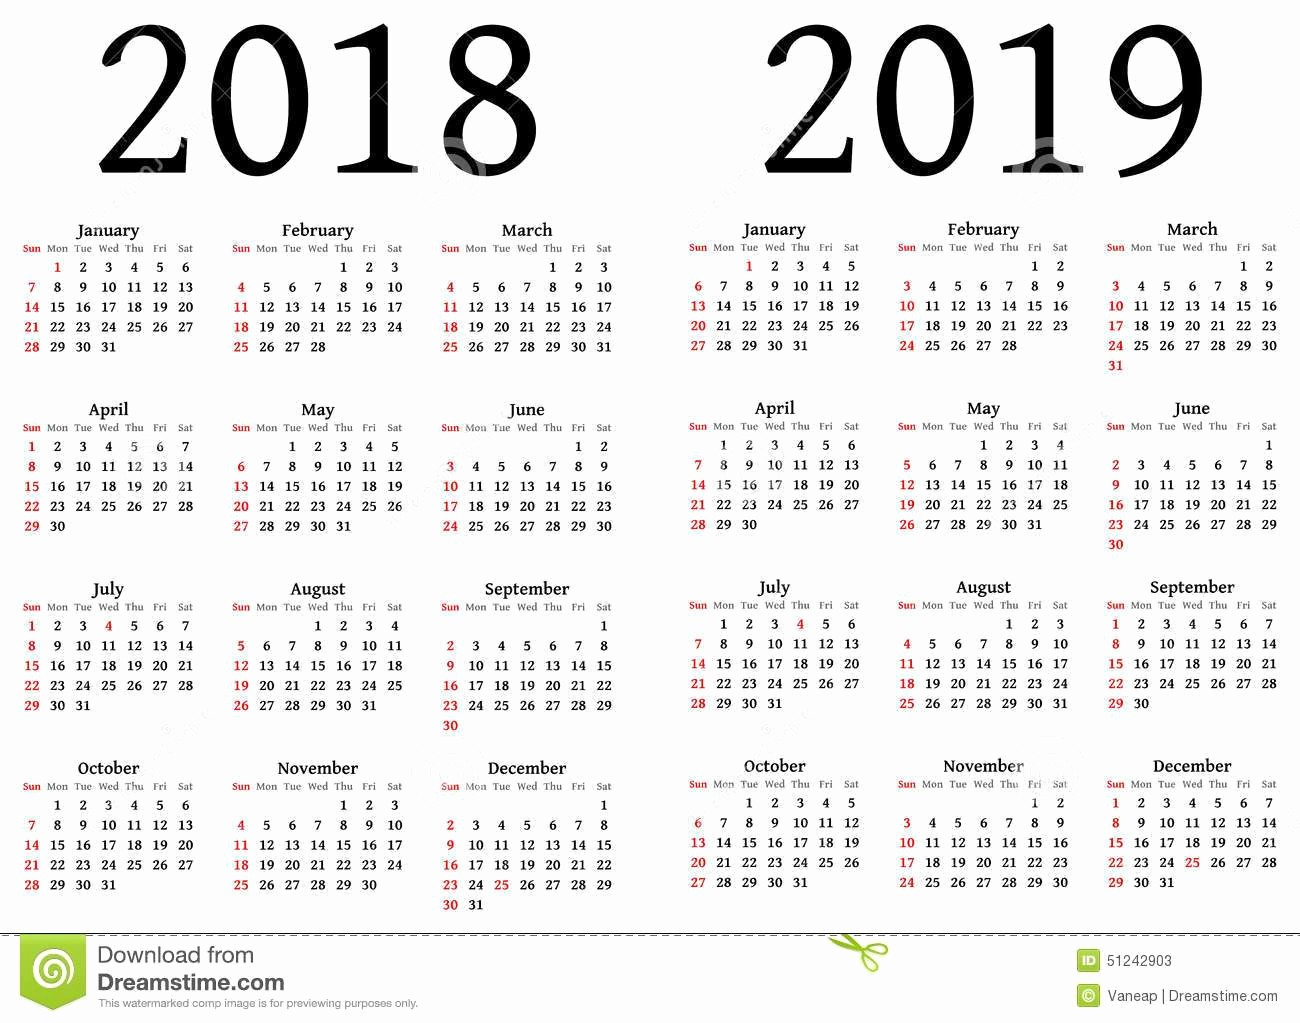 Printable Calendar 2018 and 2019 Best Of Julian Calendar 2018 and 2019